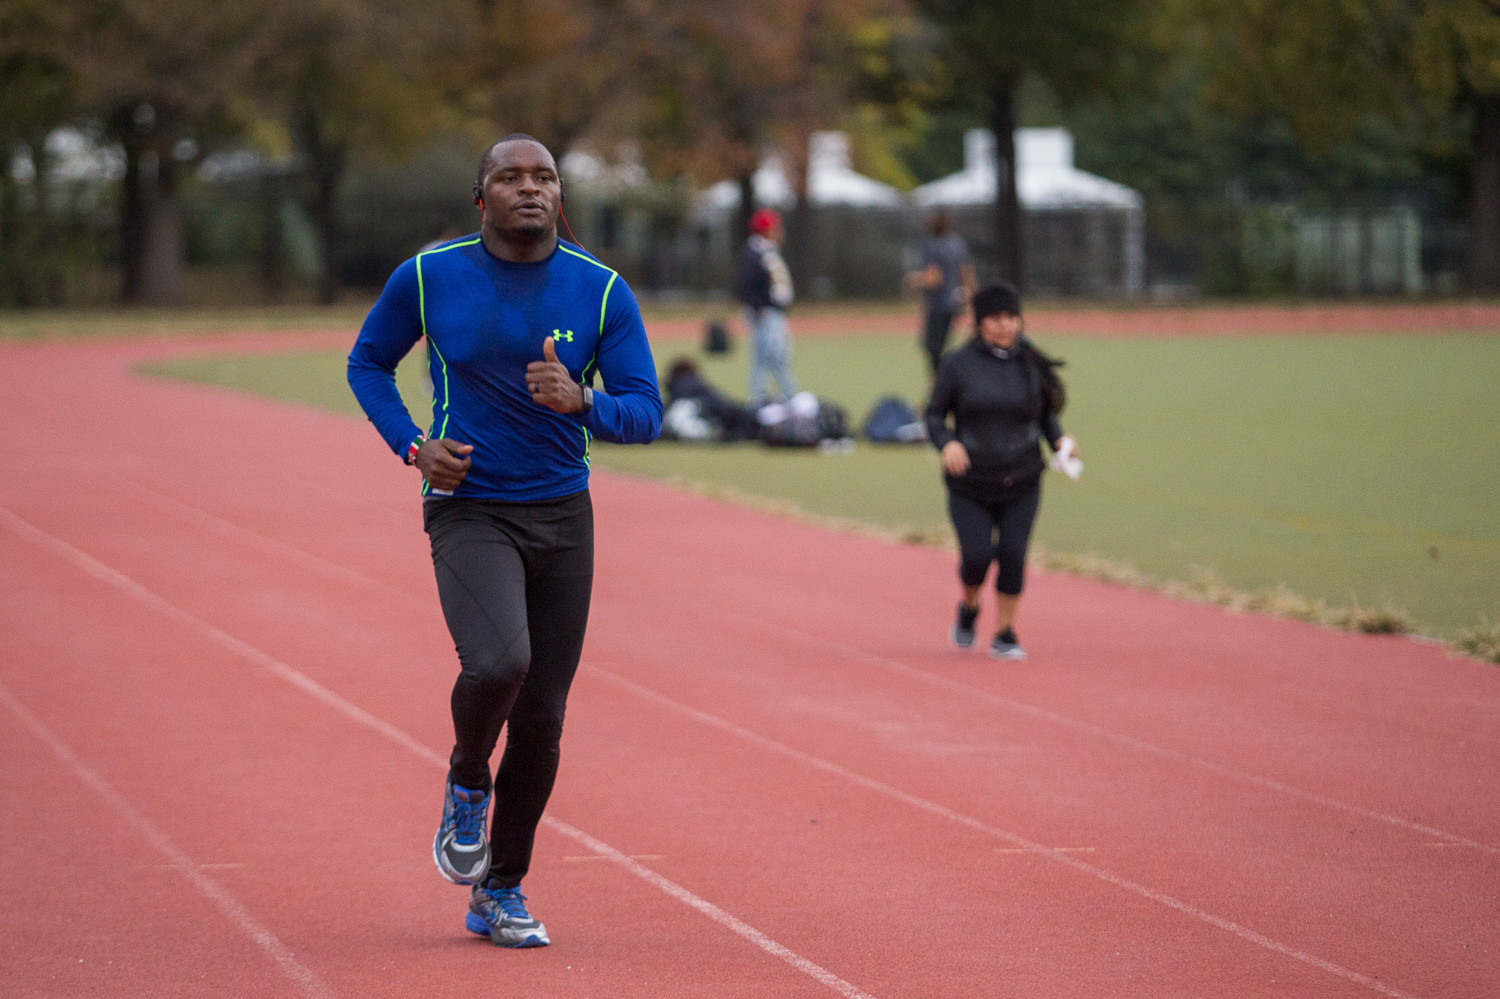 Riverdale resident Filex Mwake trains for the New York City Marathon at the track at Van Cortlandt Park two days before the race. This was his first marathon, which he completed in four hours and six minutes.